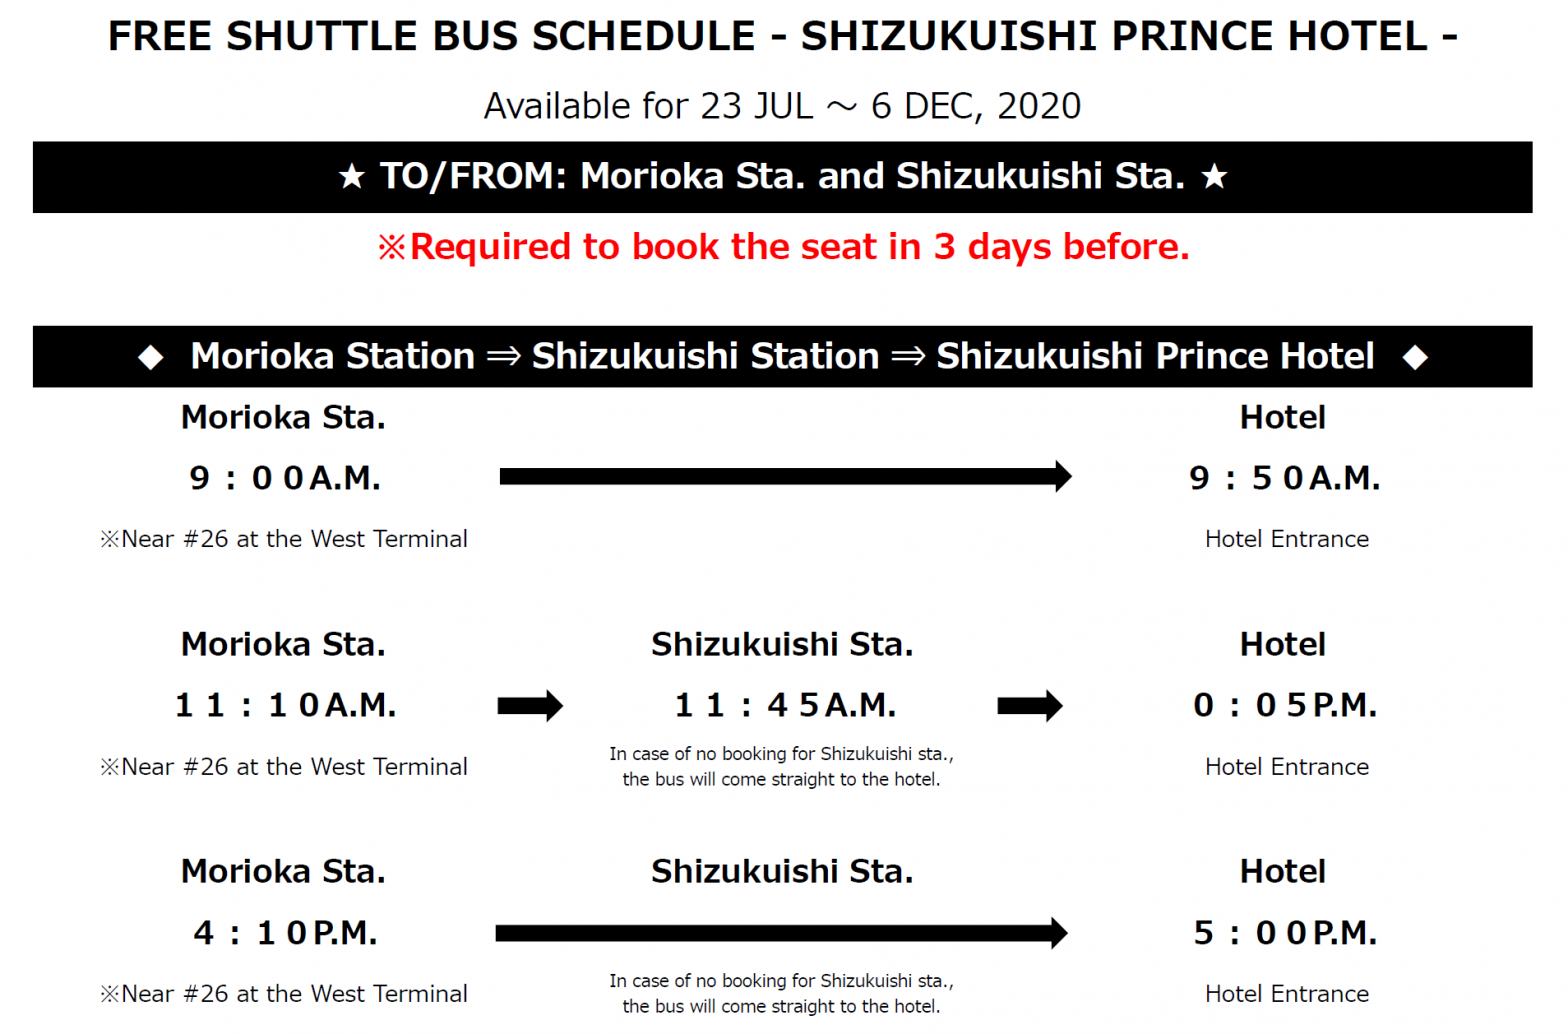 Bus Schedule for 23JUL – 6DEC, 2020 (Updated on 12JUL)